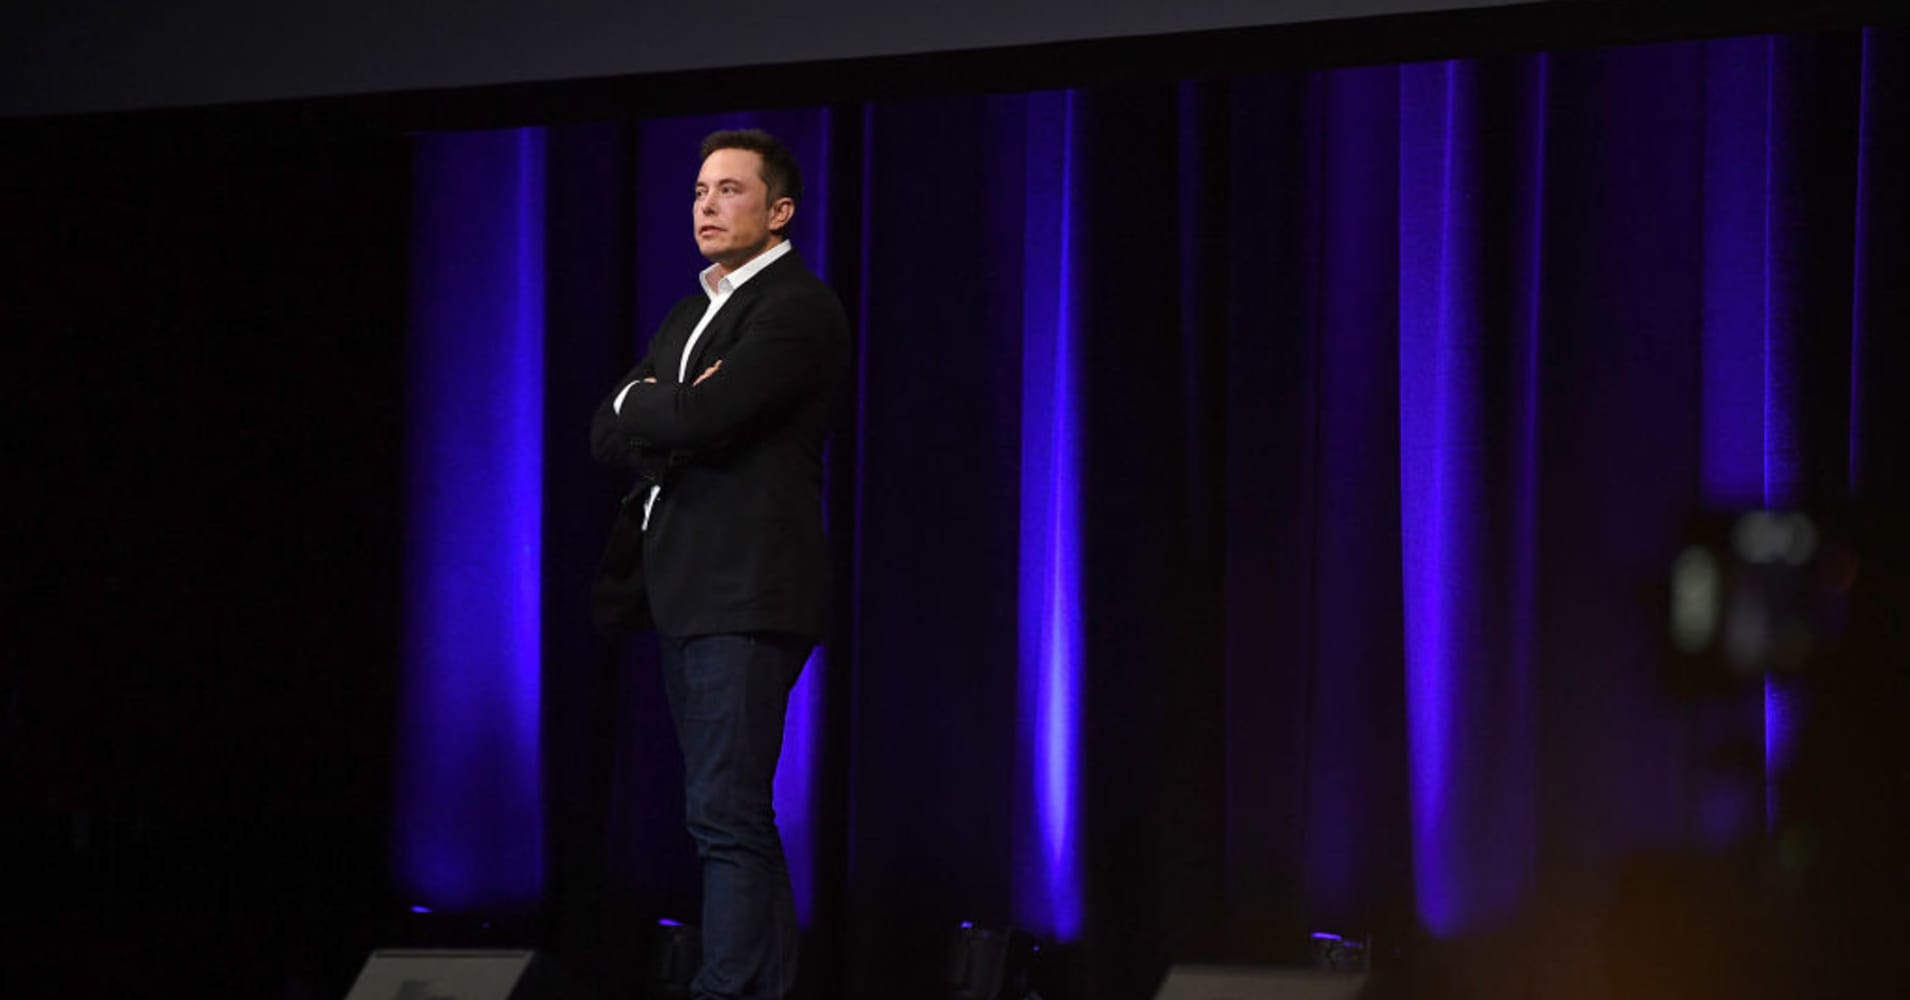 SpaceX CEO Elon Musk at the International Astronautical Congress on September 29, 2017 in Adelaide, Australia.